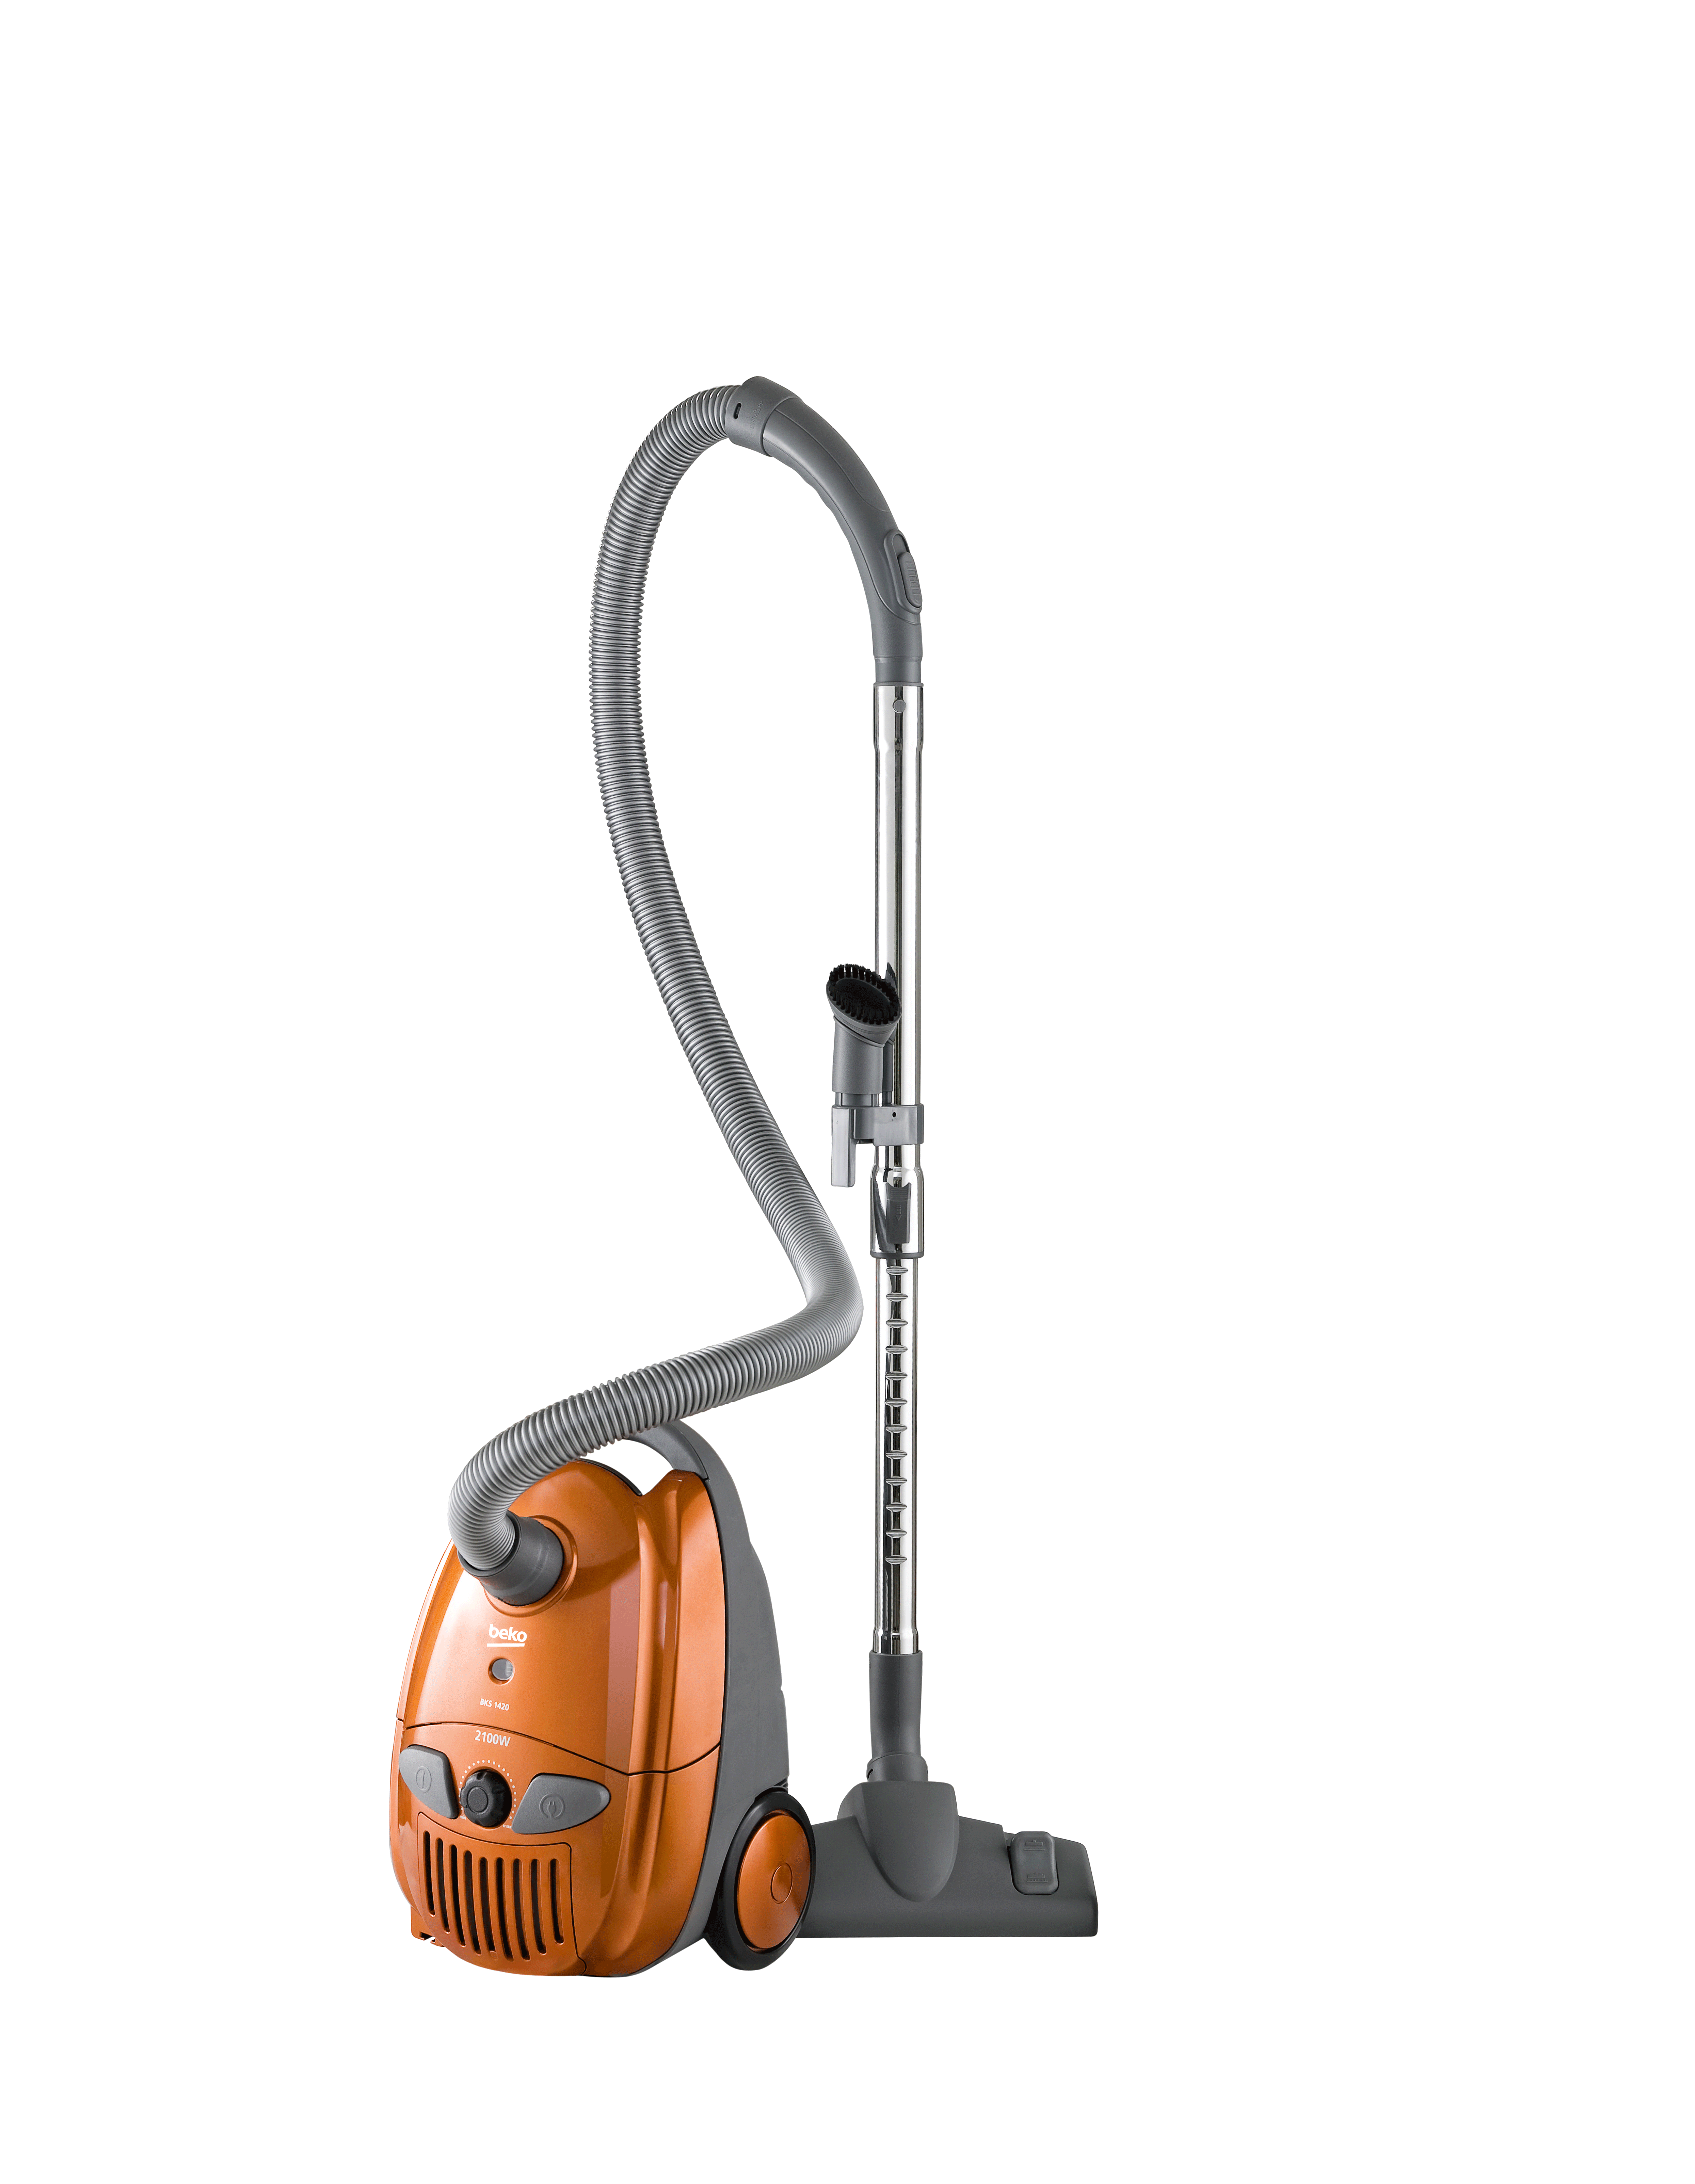 Bagged Canister Vacuum Cleaner (2100 W) BKS 1420